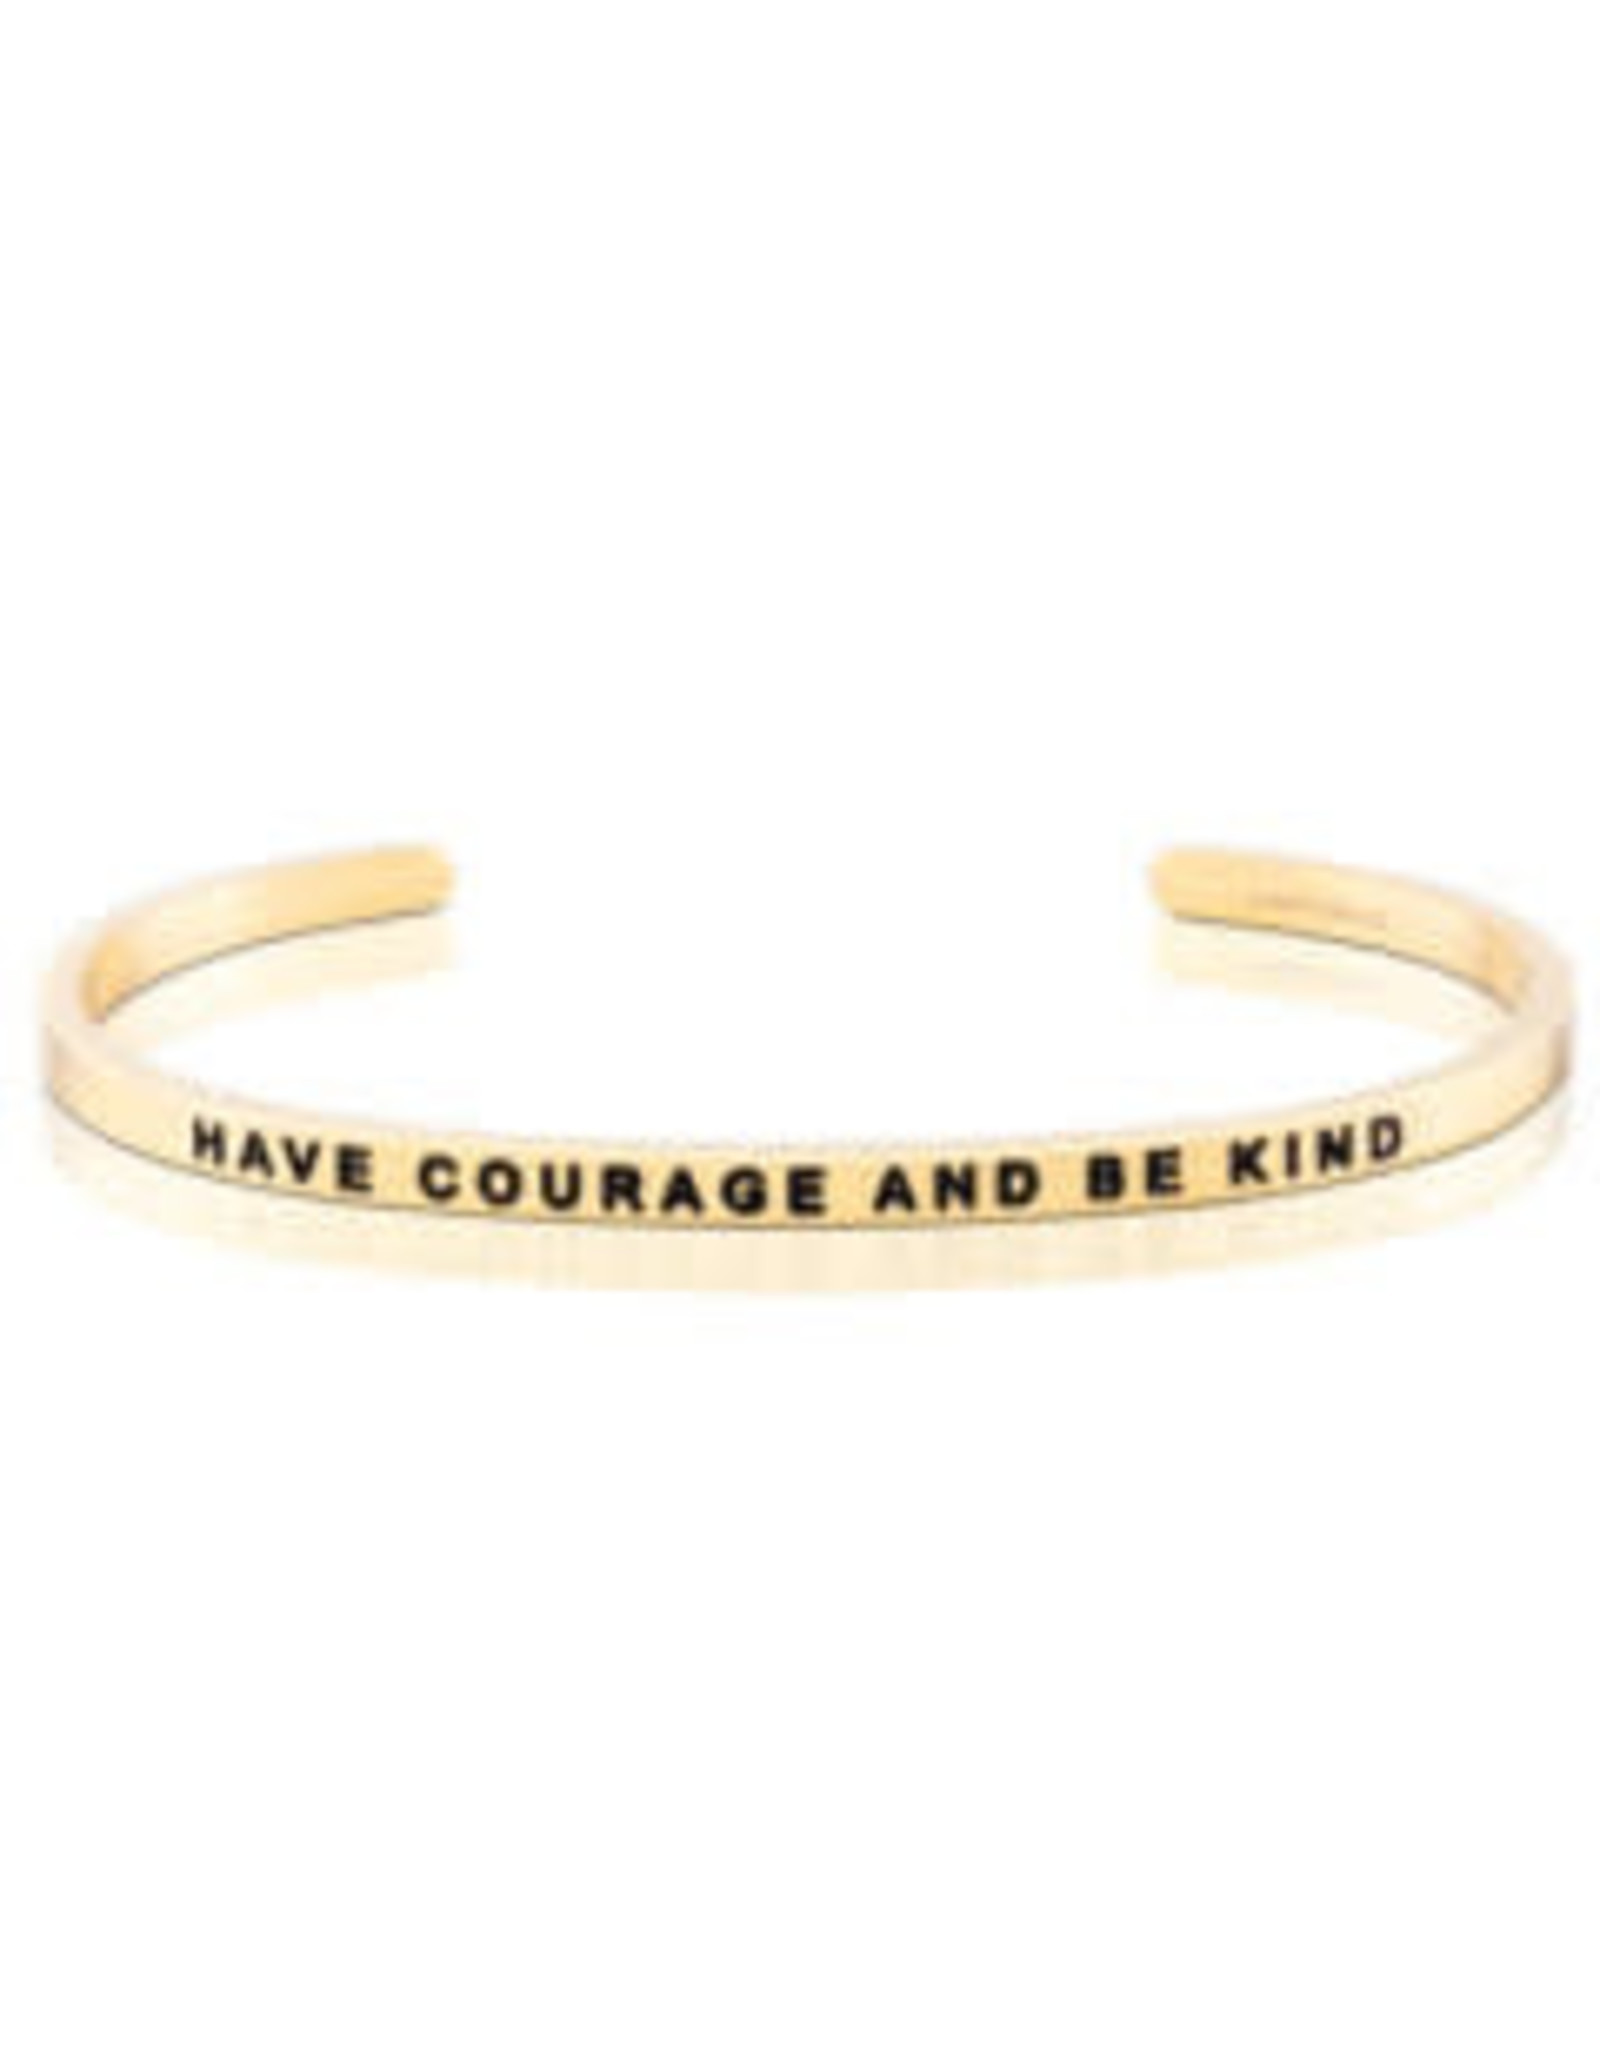 MantraBand MantraBand Bracelet, Have Courage And Be Kind